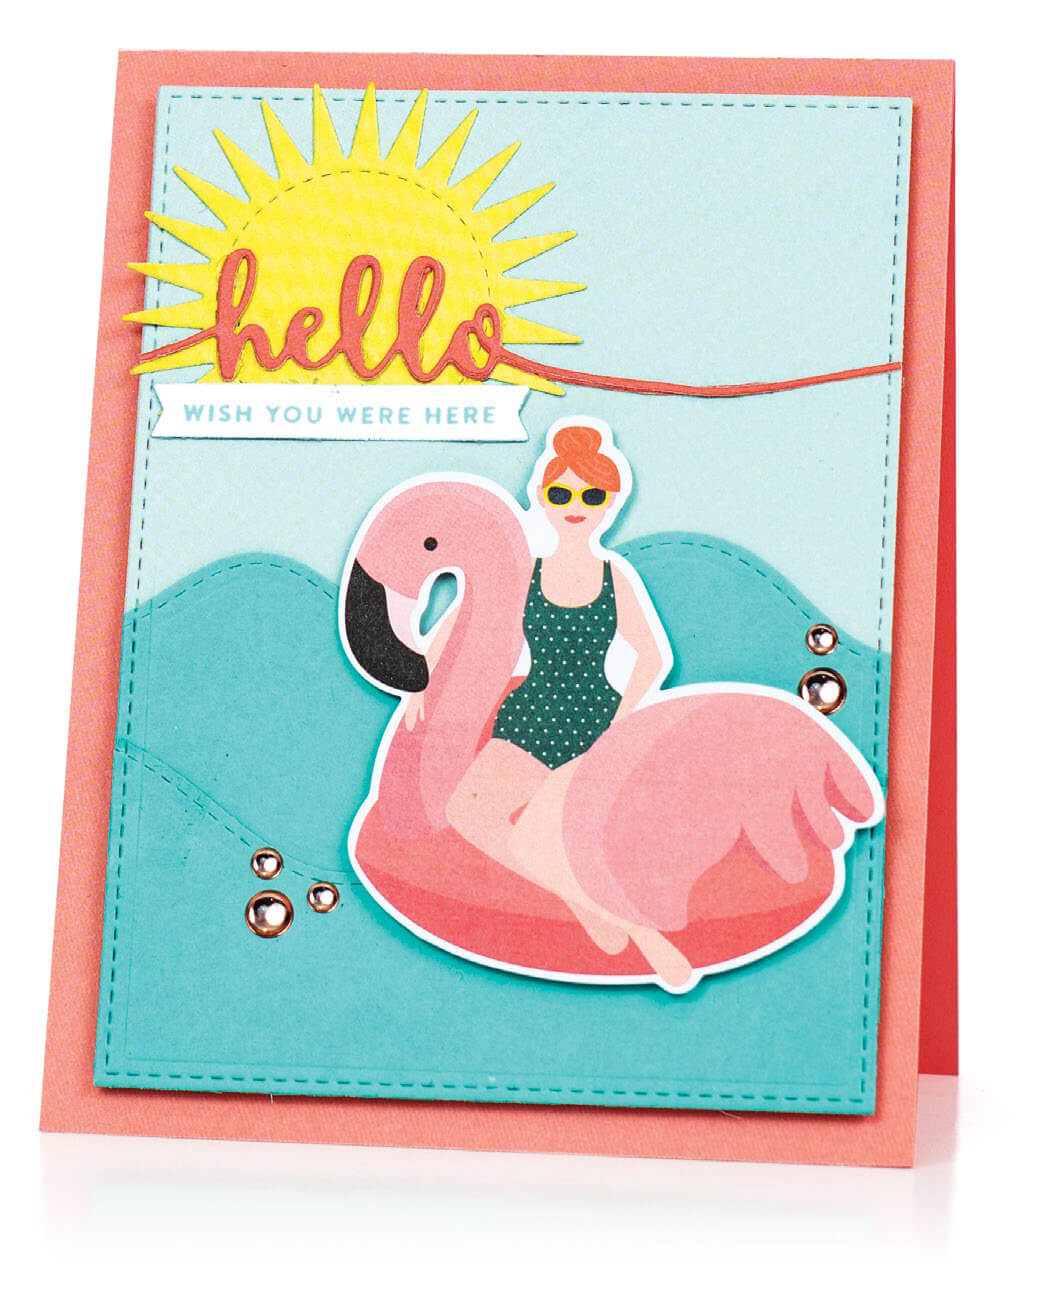 Scrapbook & Cards Today - Summer 2019 - Hello Wish You Were Here card by Susan R Opel